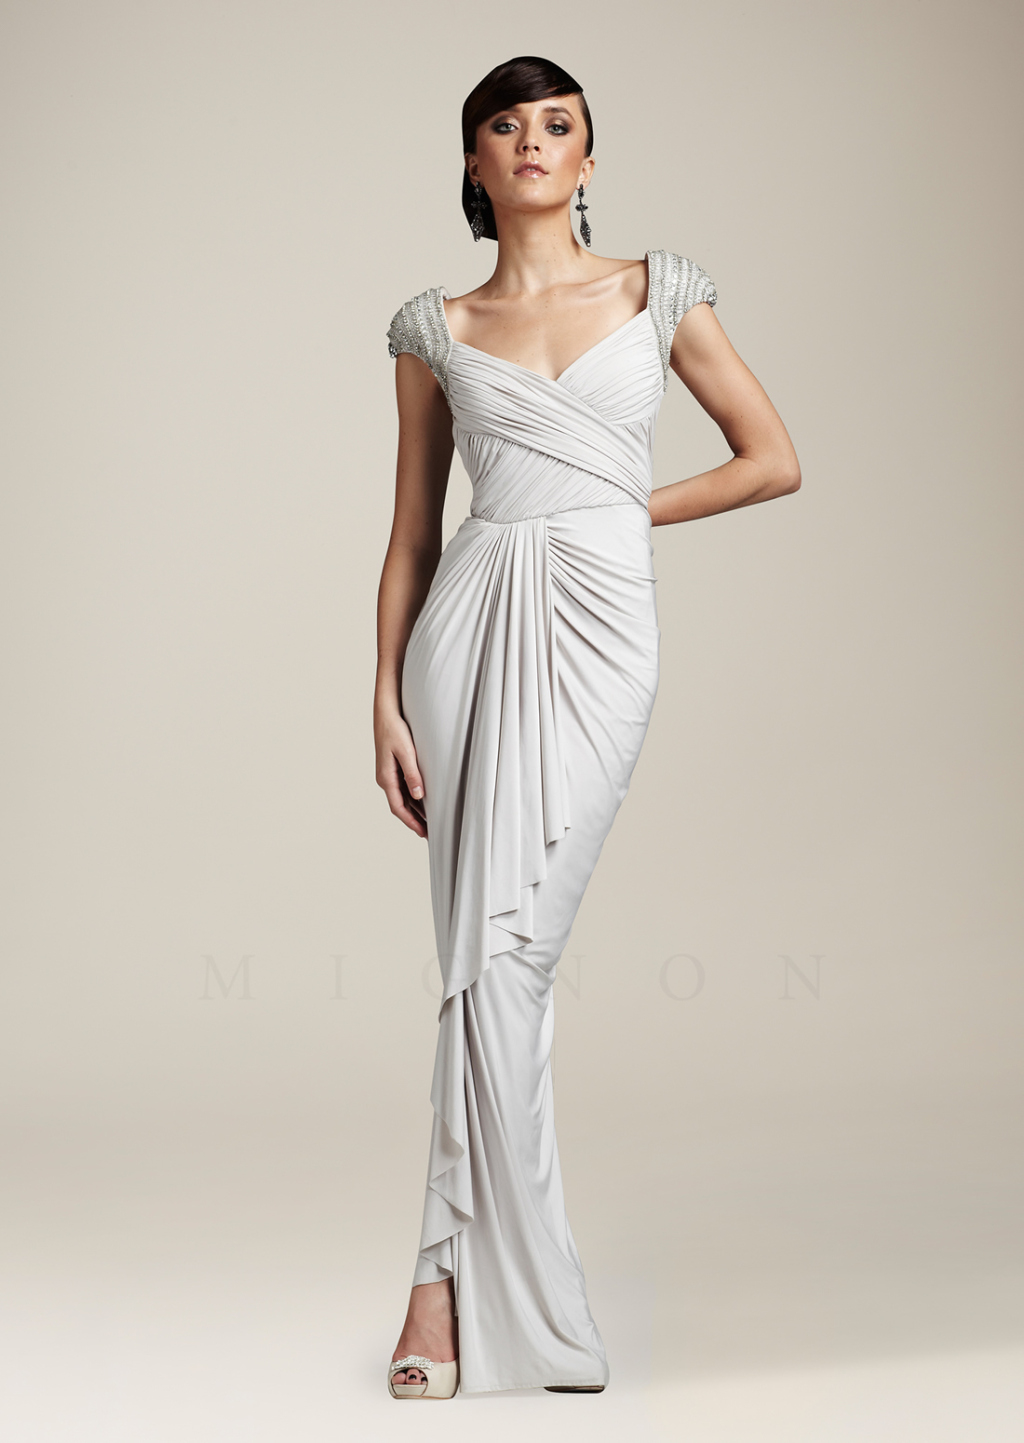 Mignon Formal White Gown Pictures, Photos, and Images for Facebook ...